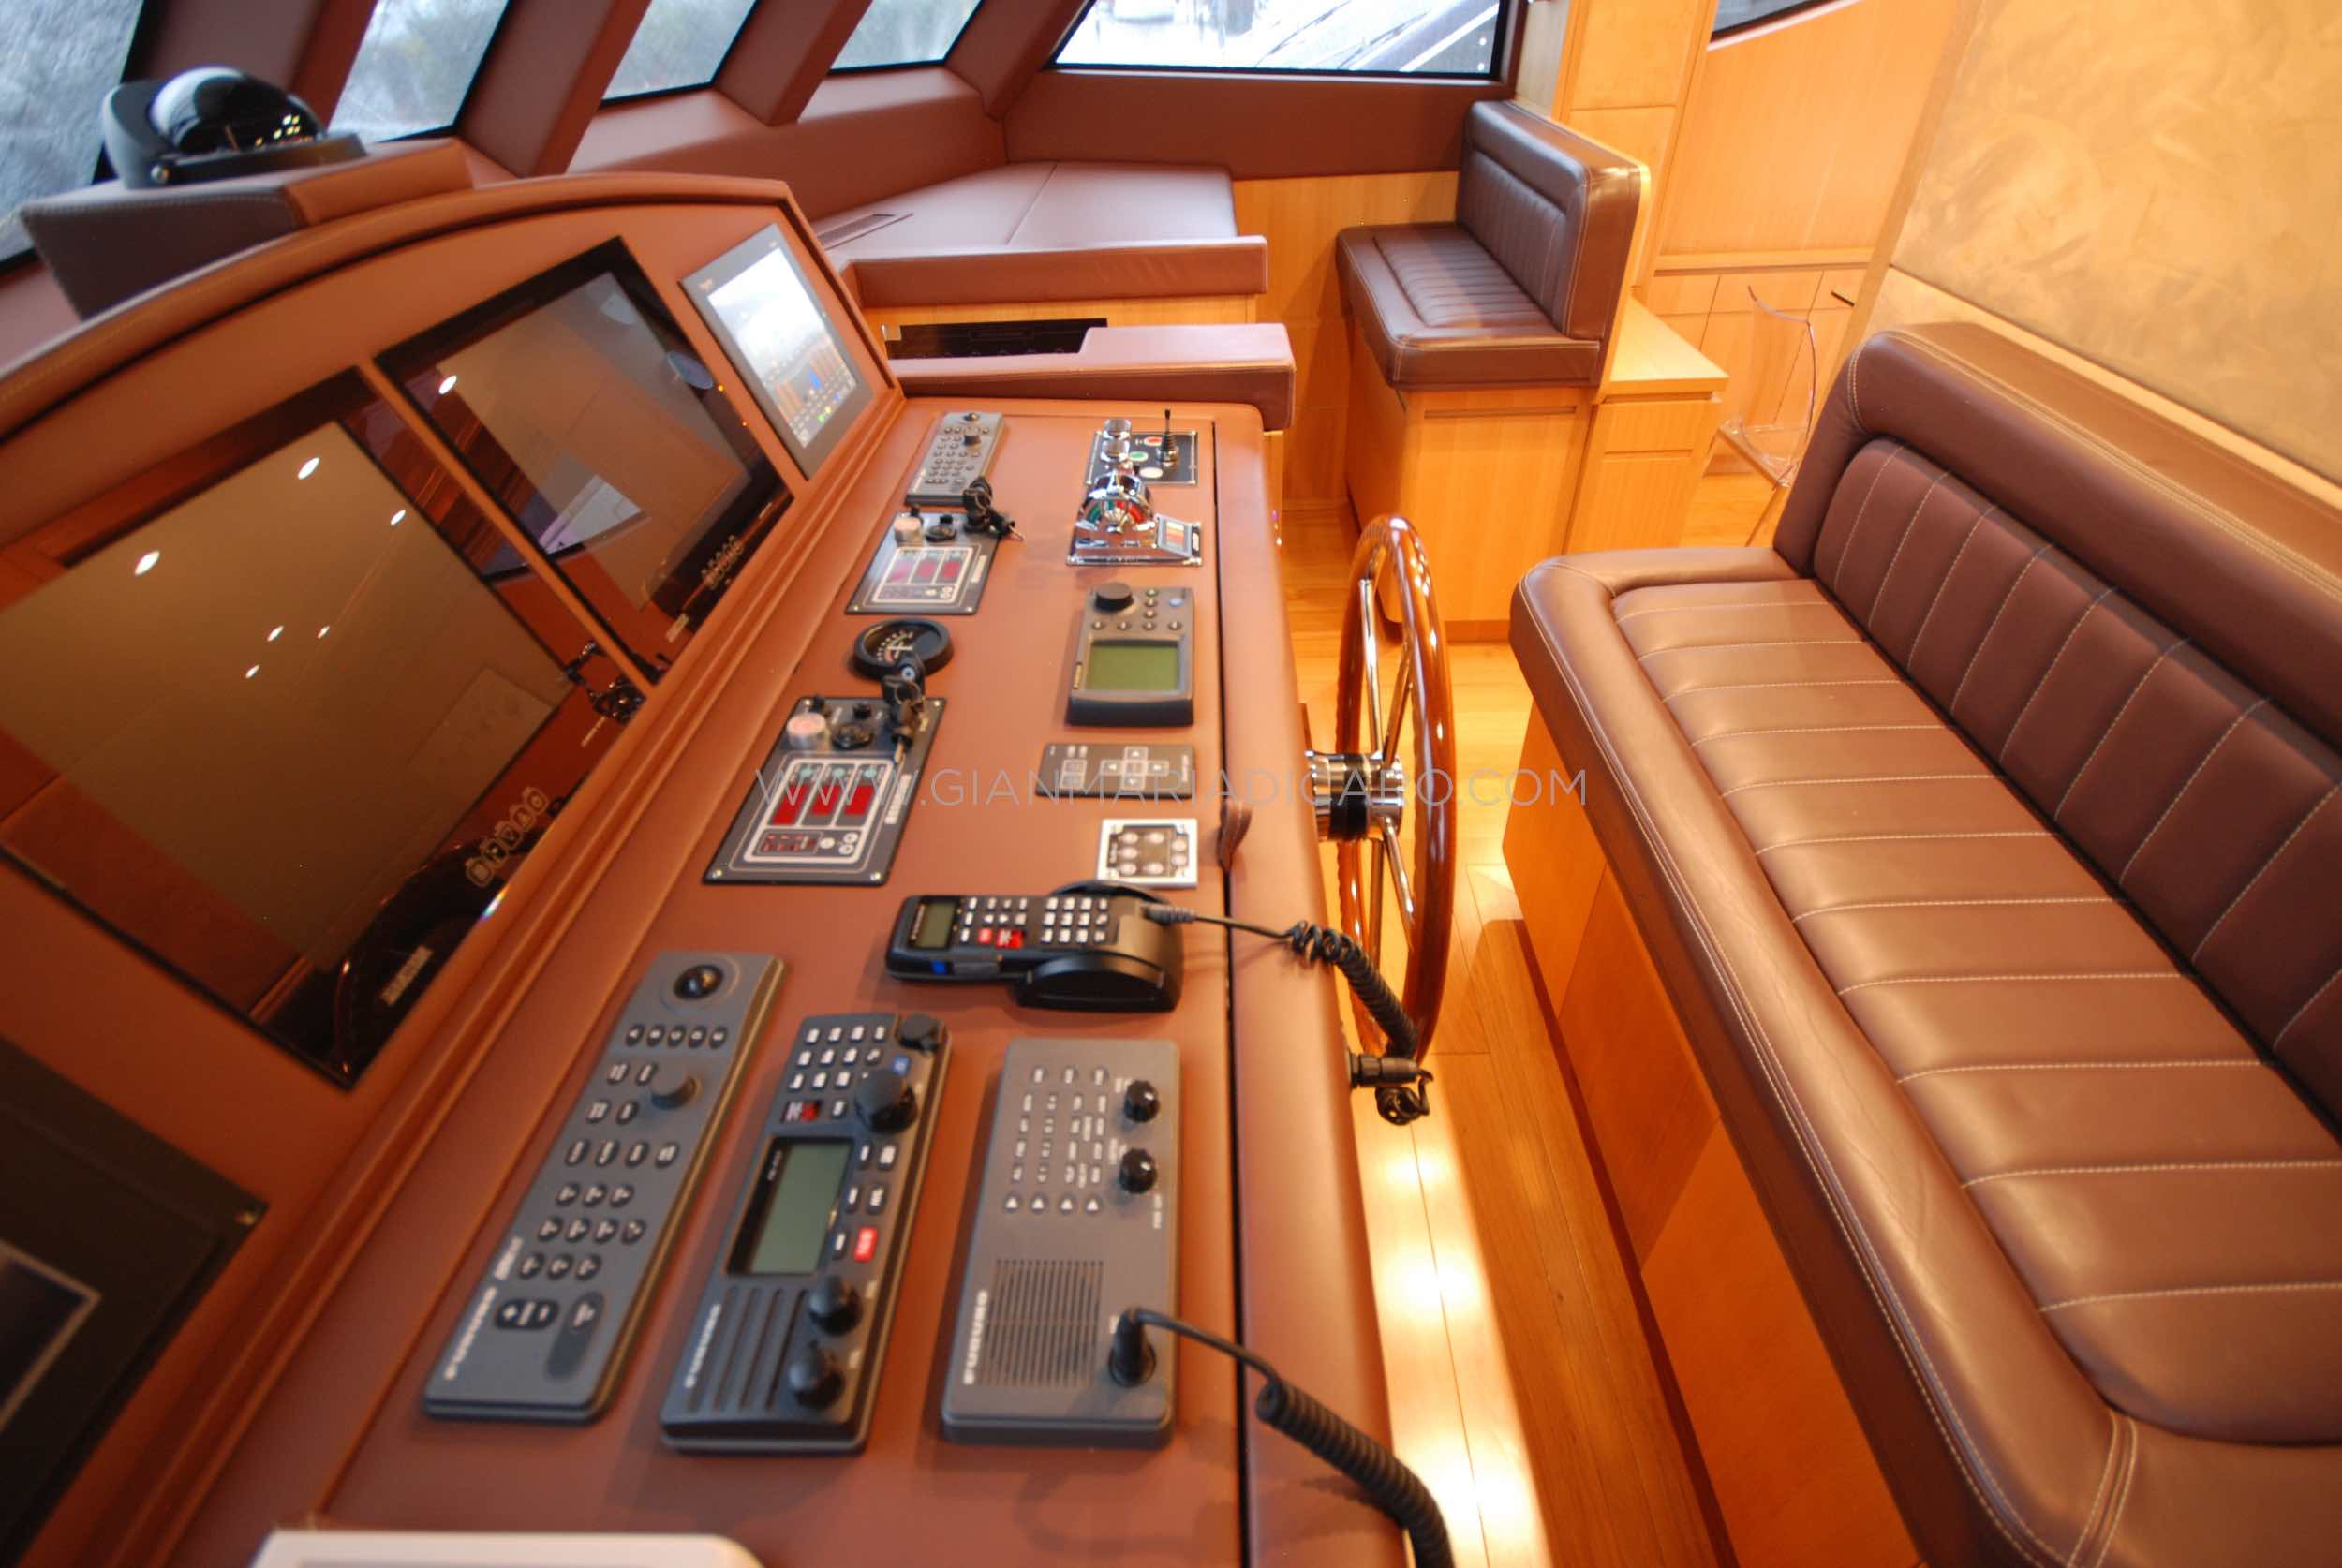 emys-yacht-22-unica-for-sale-157.jpg